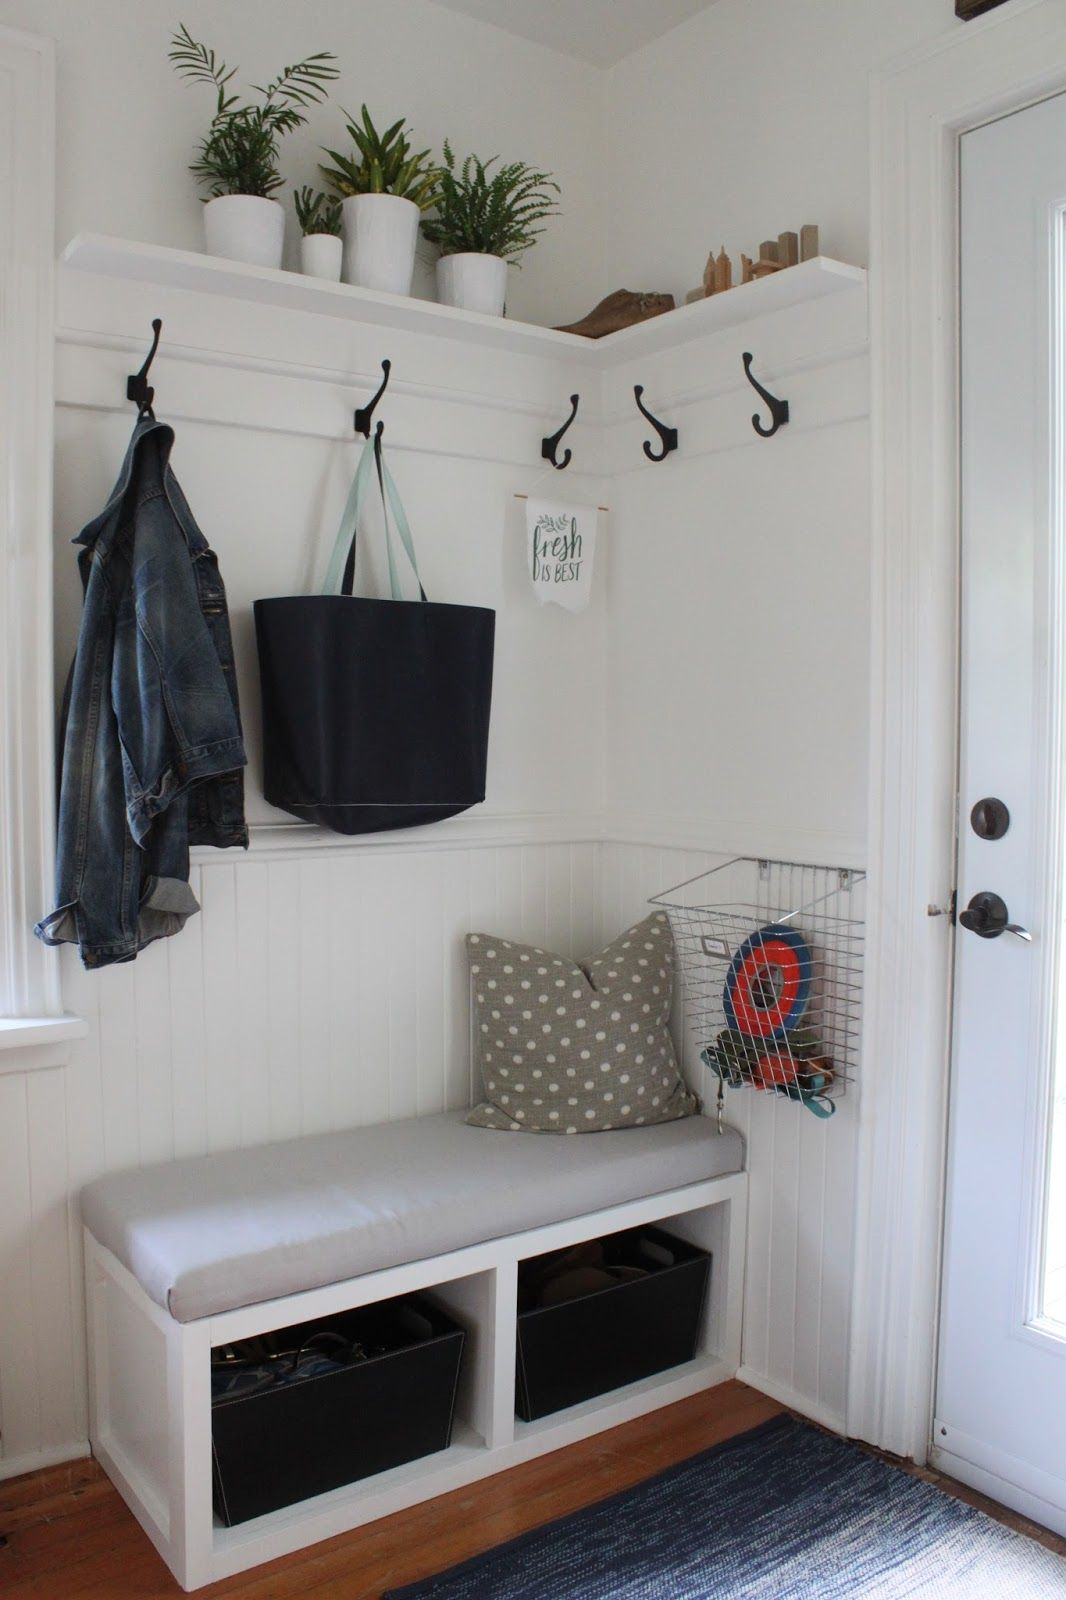 20 Well Designed Small Room Ideas To Inspire You With Images